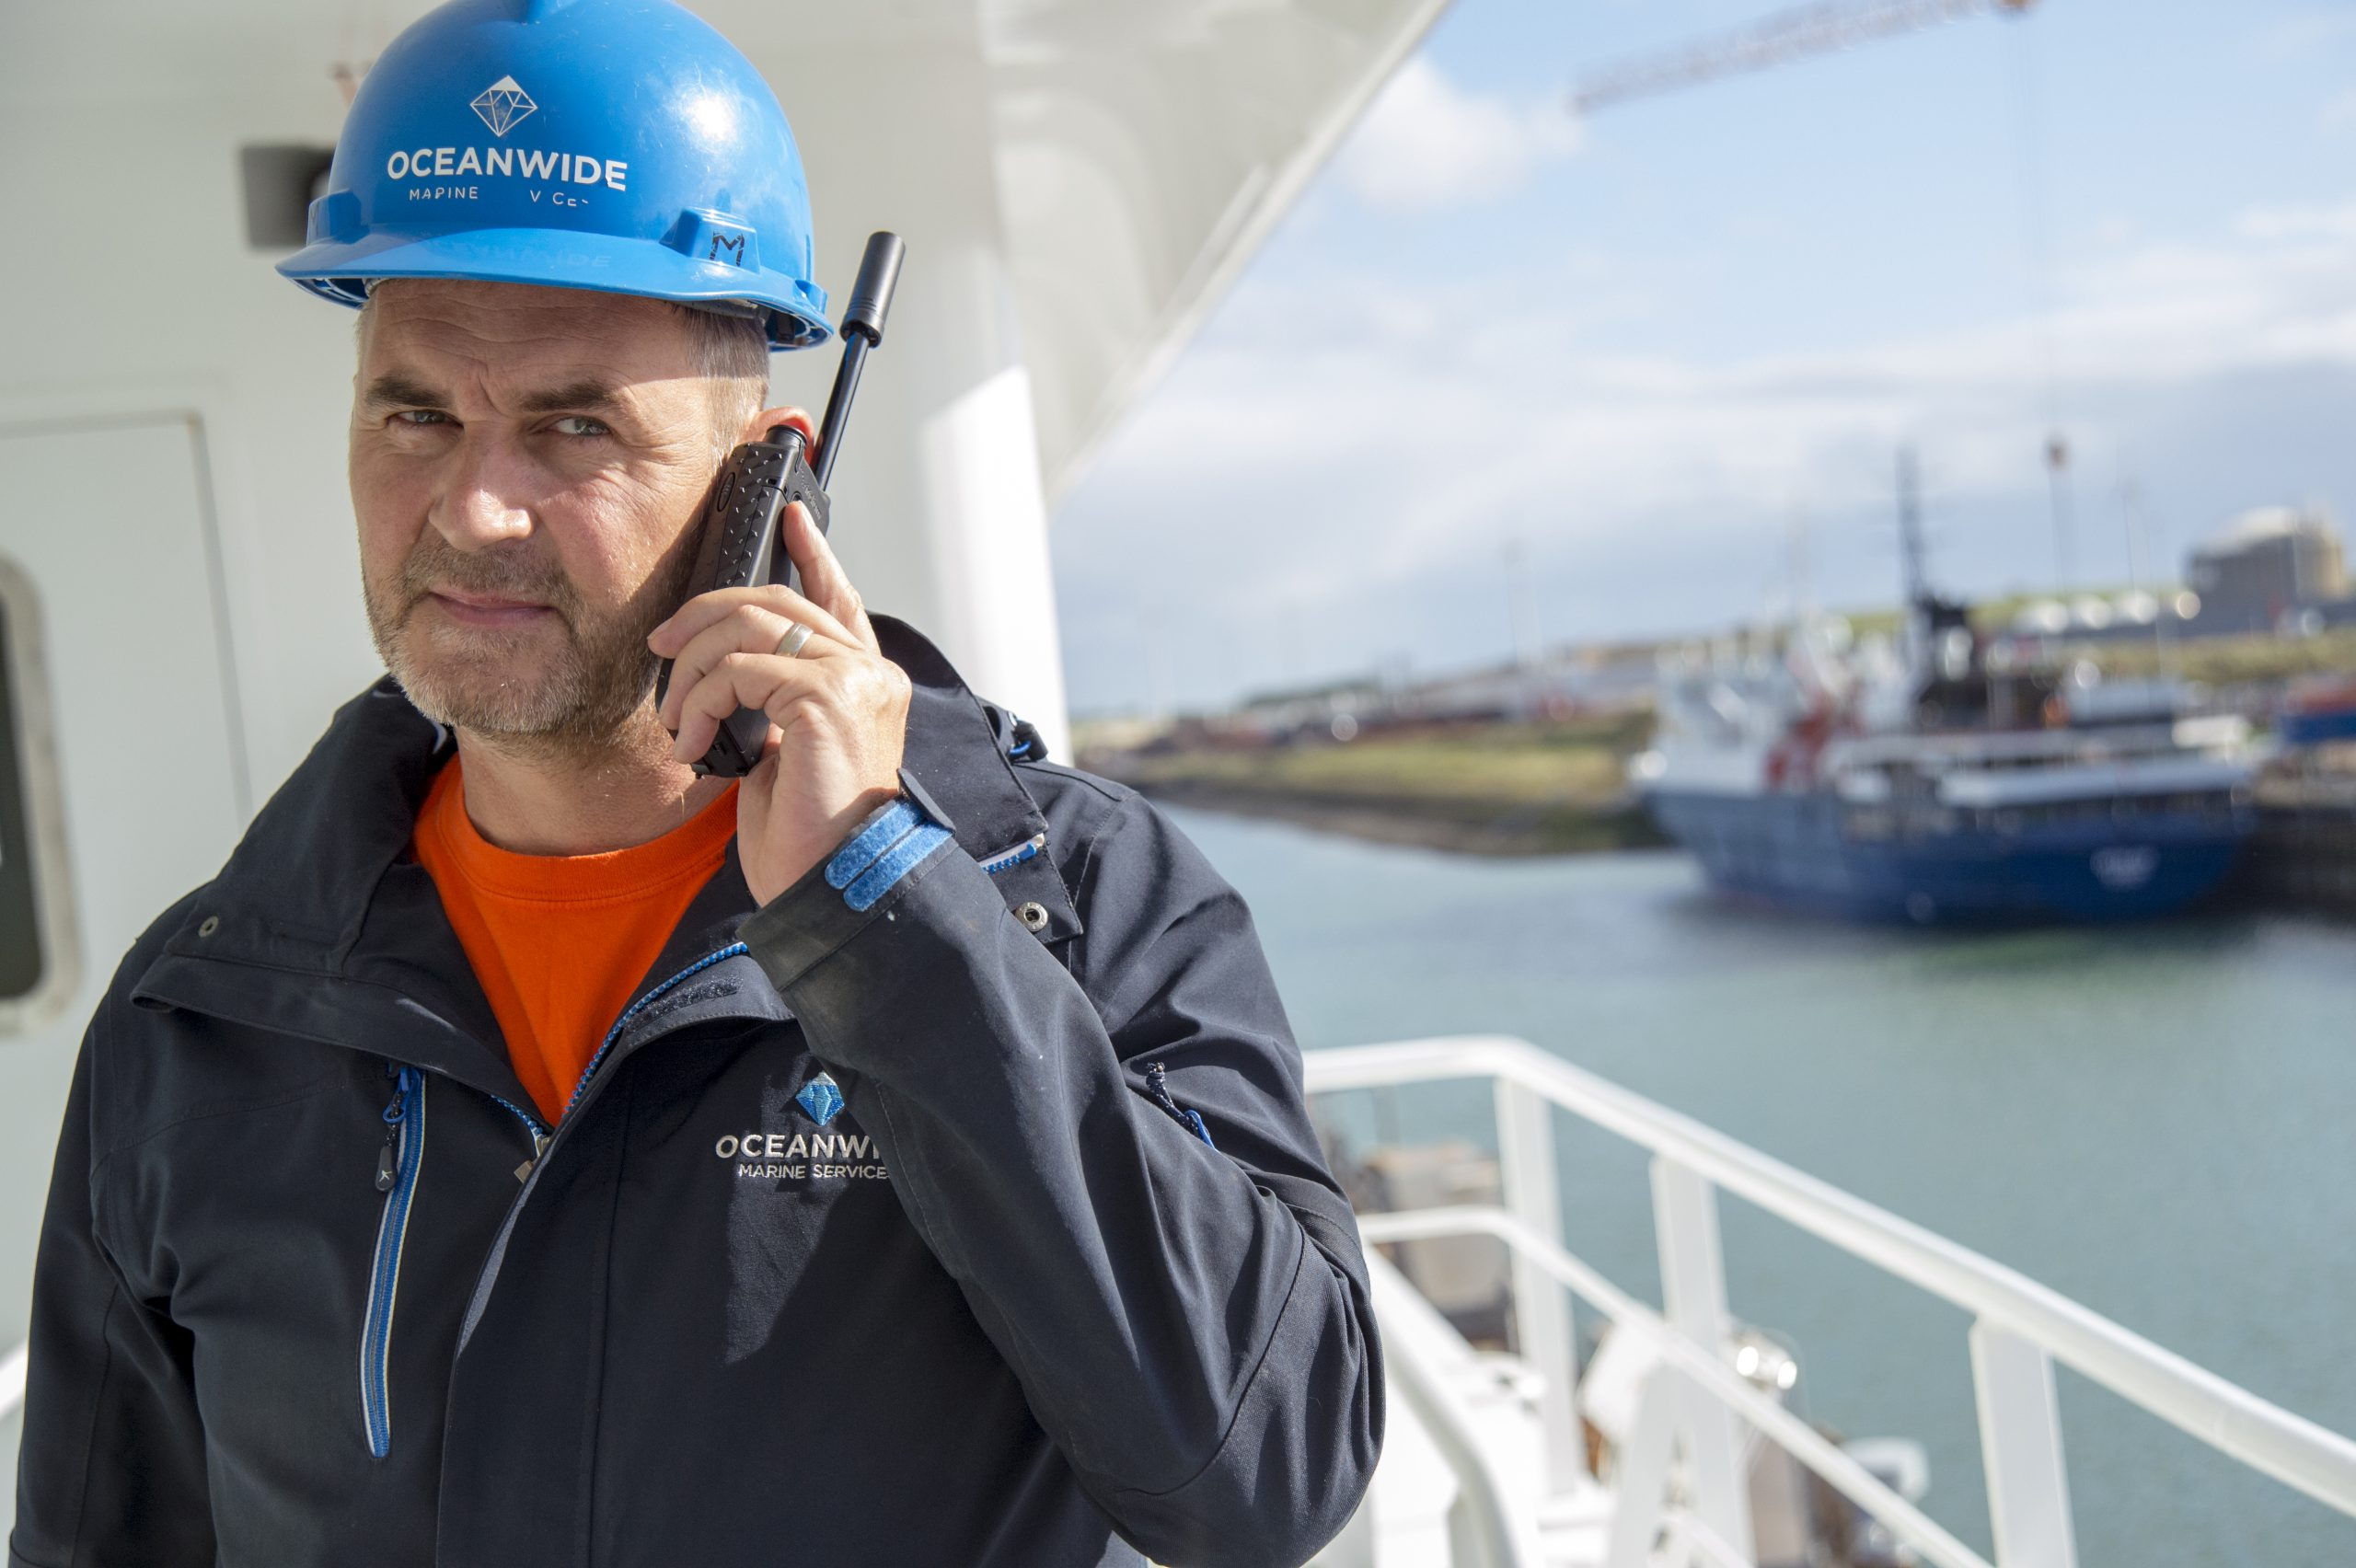 Man using Iridium Extreme on a ship leaving for an expedition